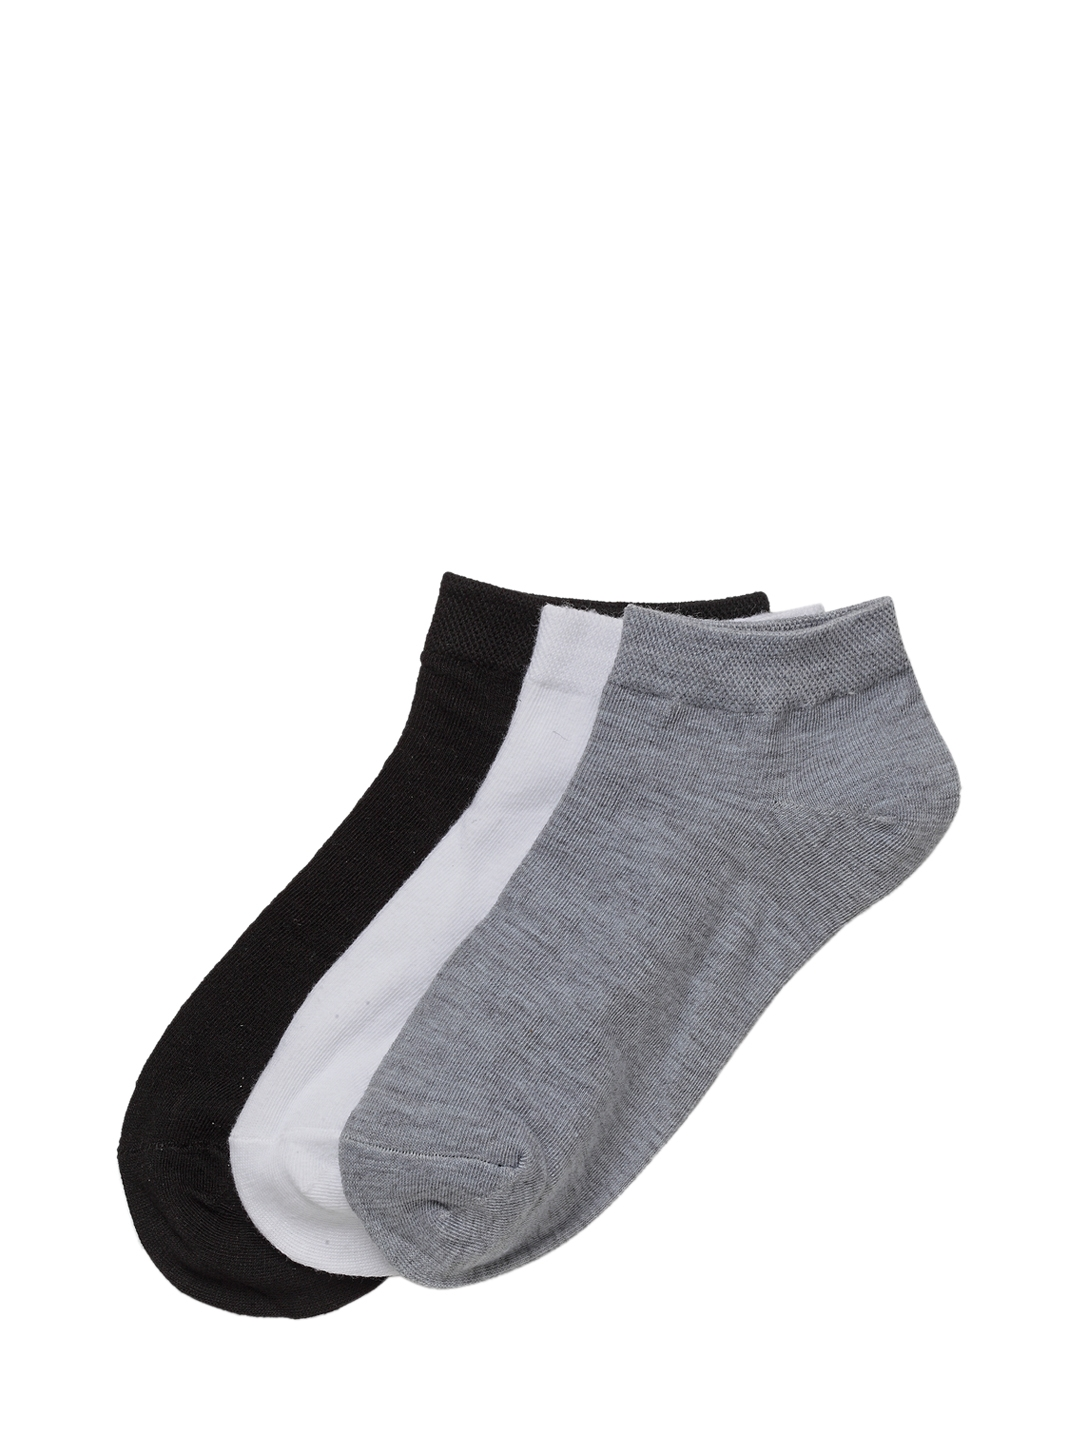 J Style Women Pack of 3 Solid Ankle Length Socks